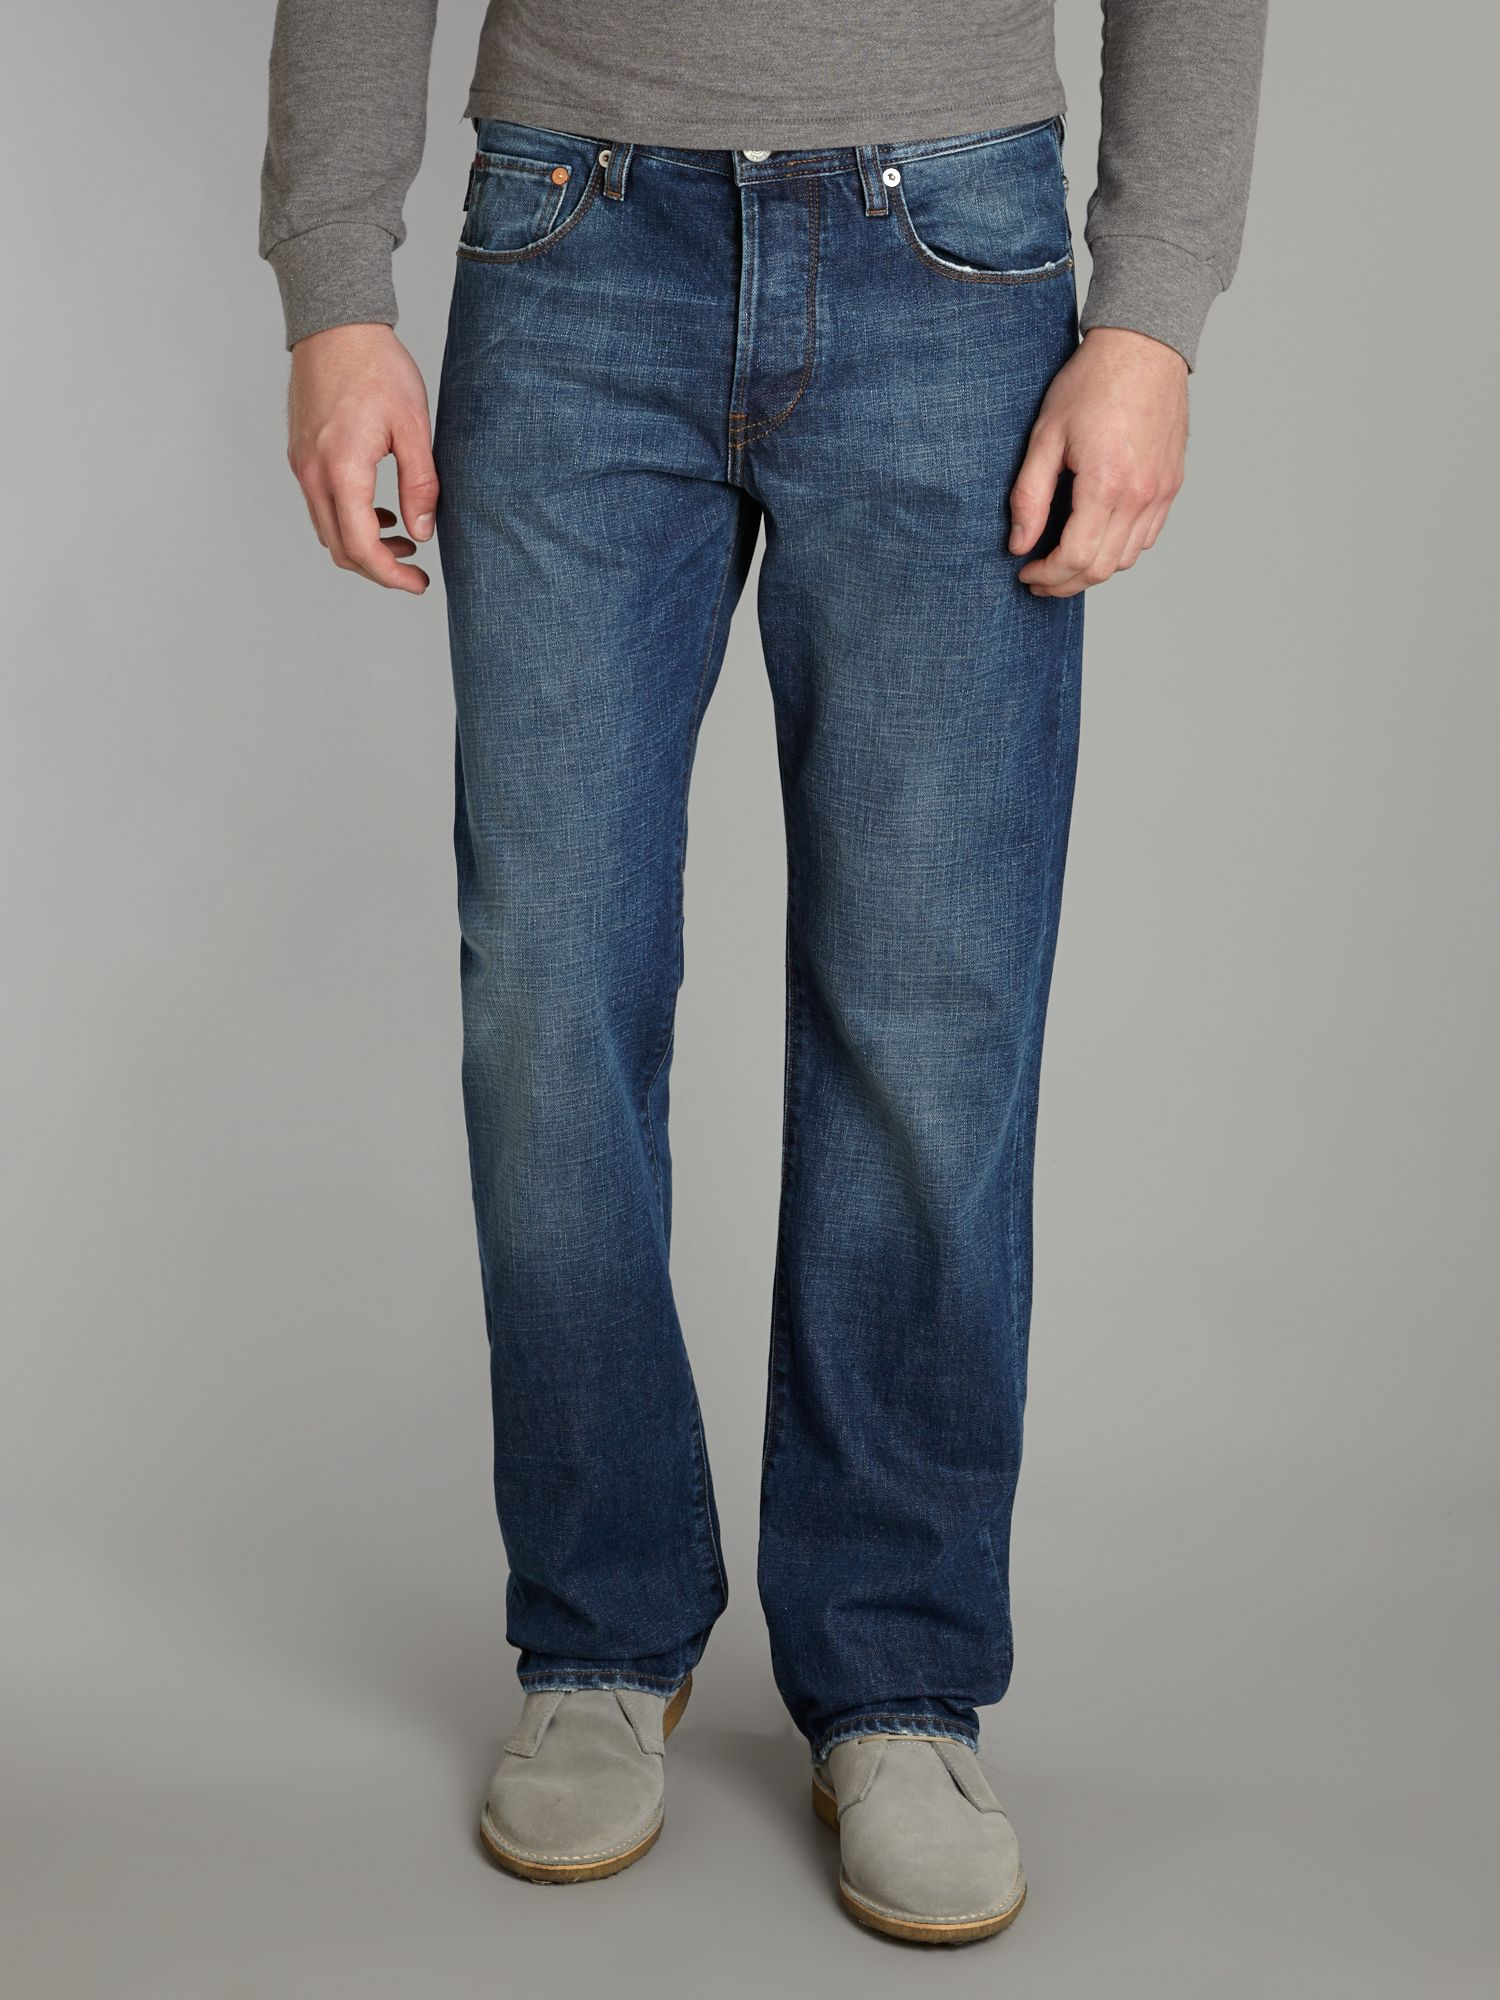 Easy fit mid wash jeans